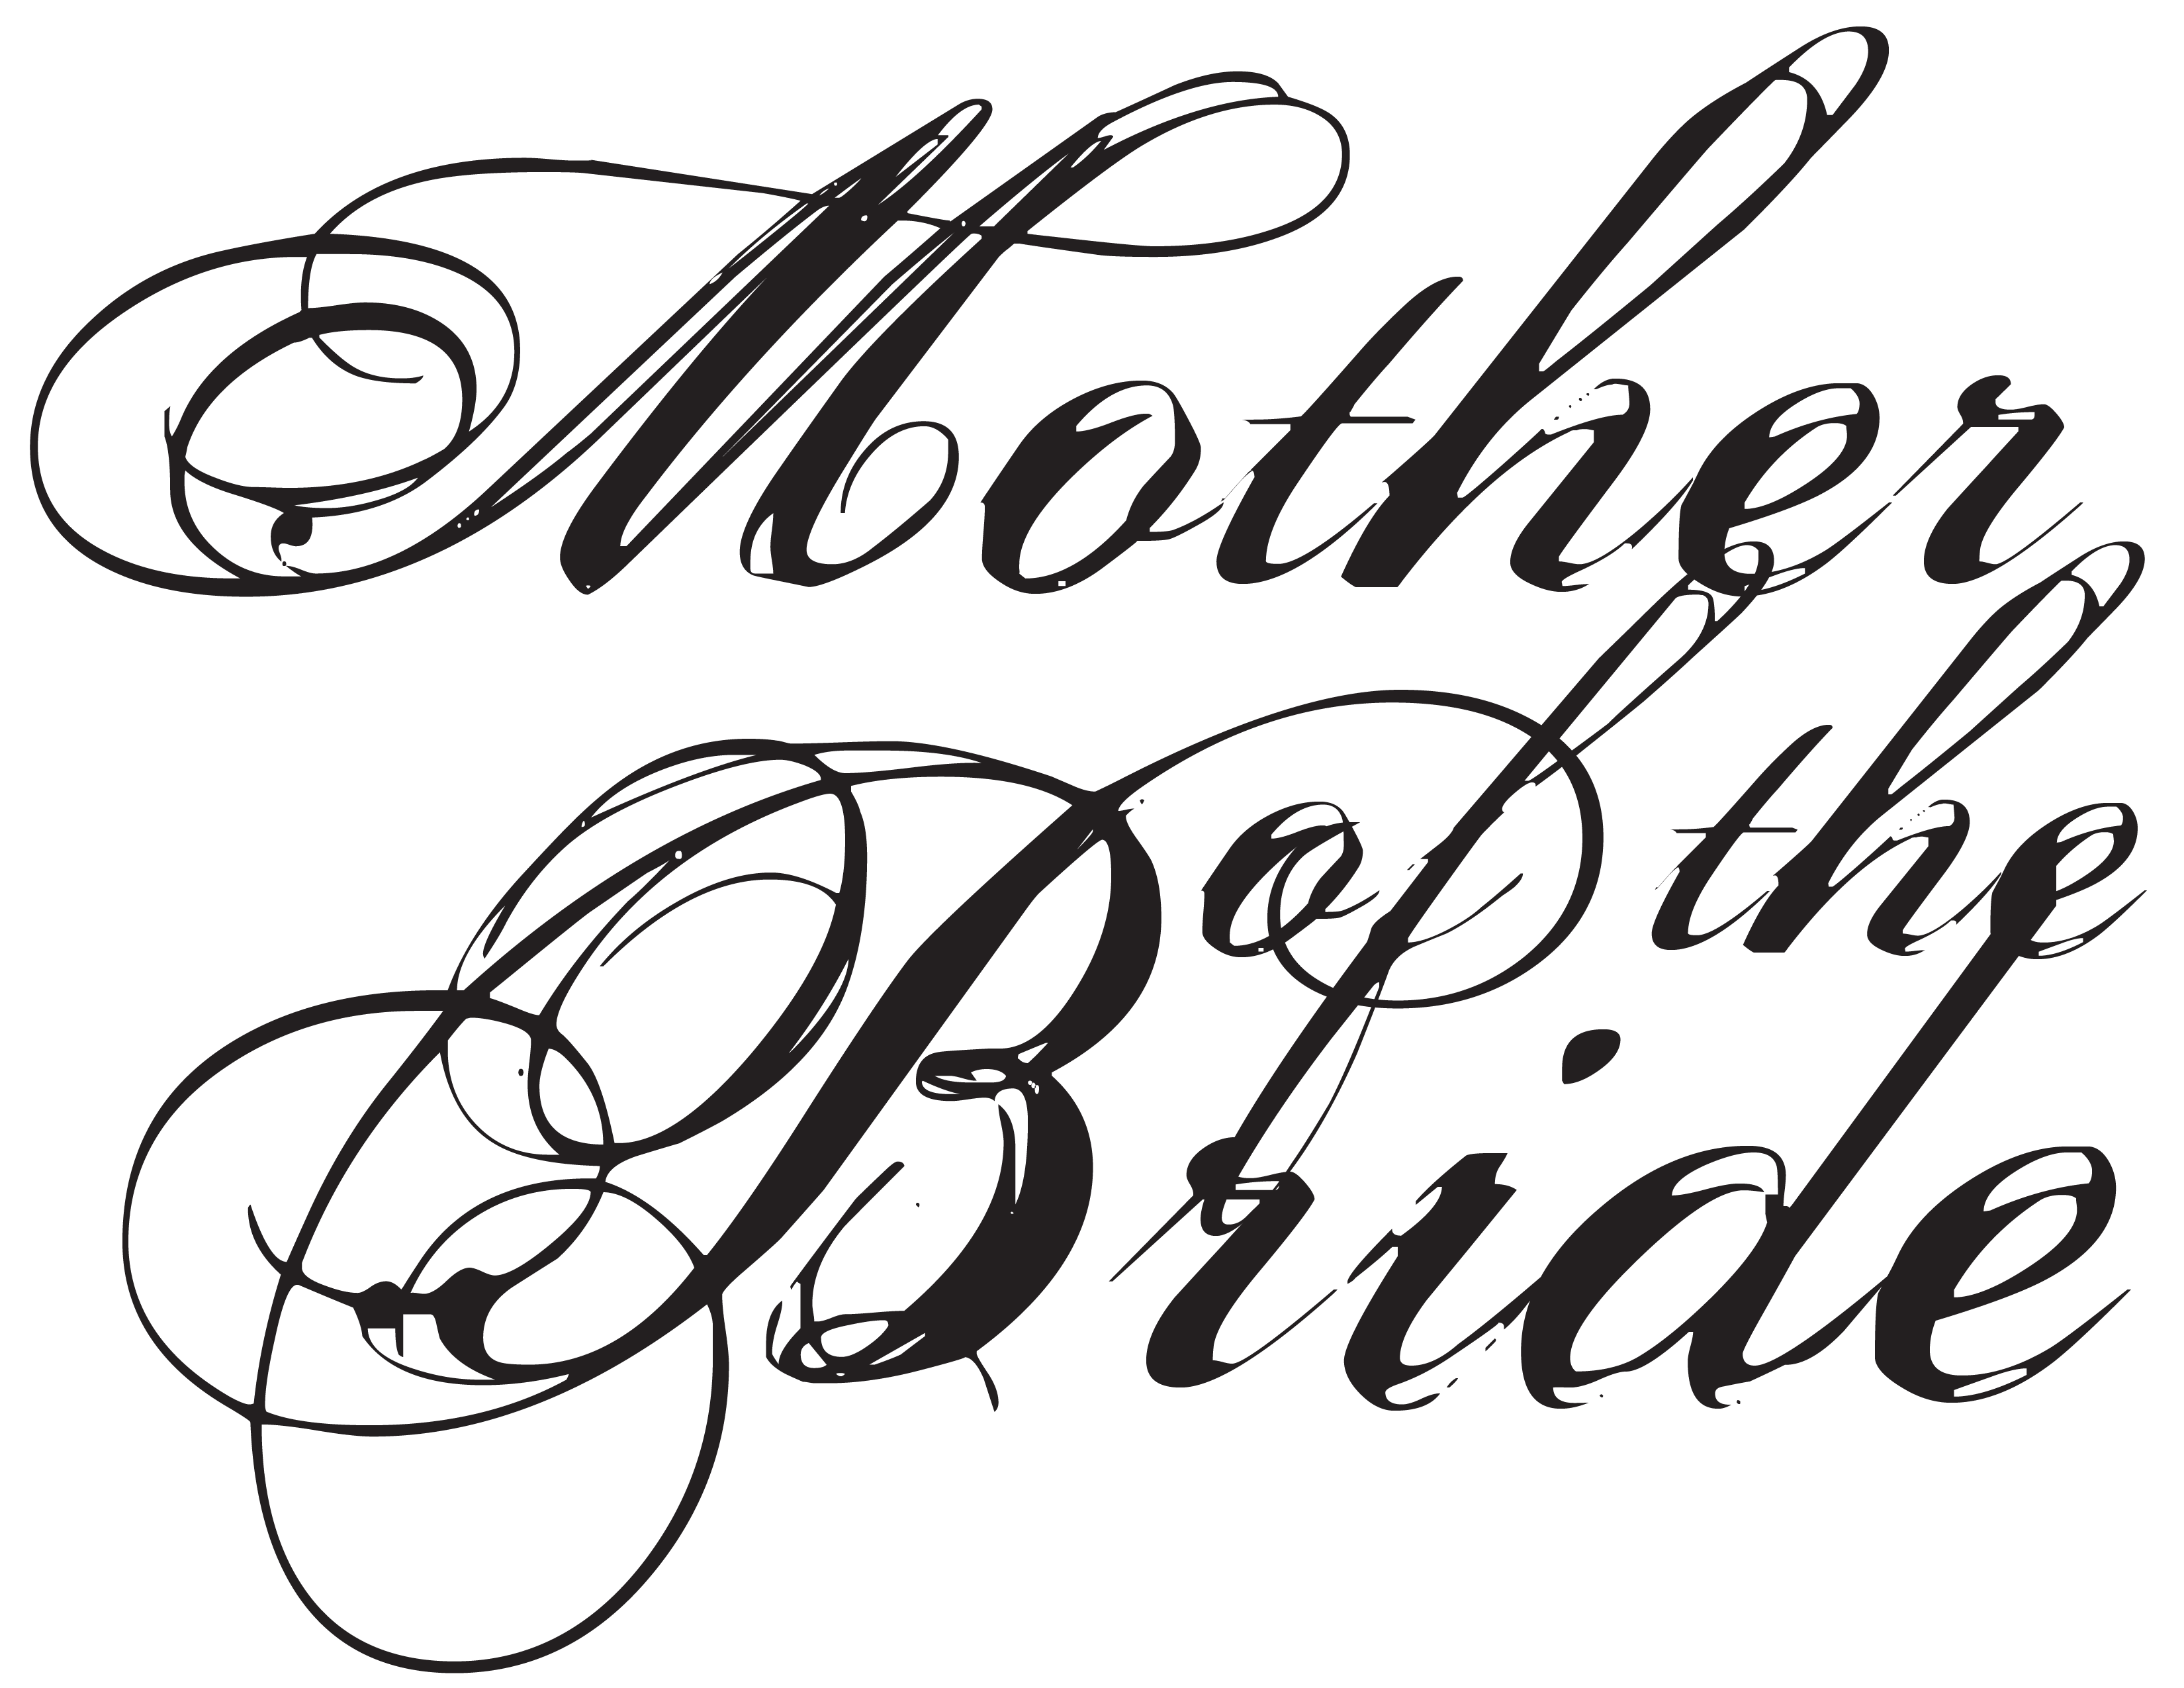 mother of the bride clipart - photo #13